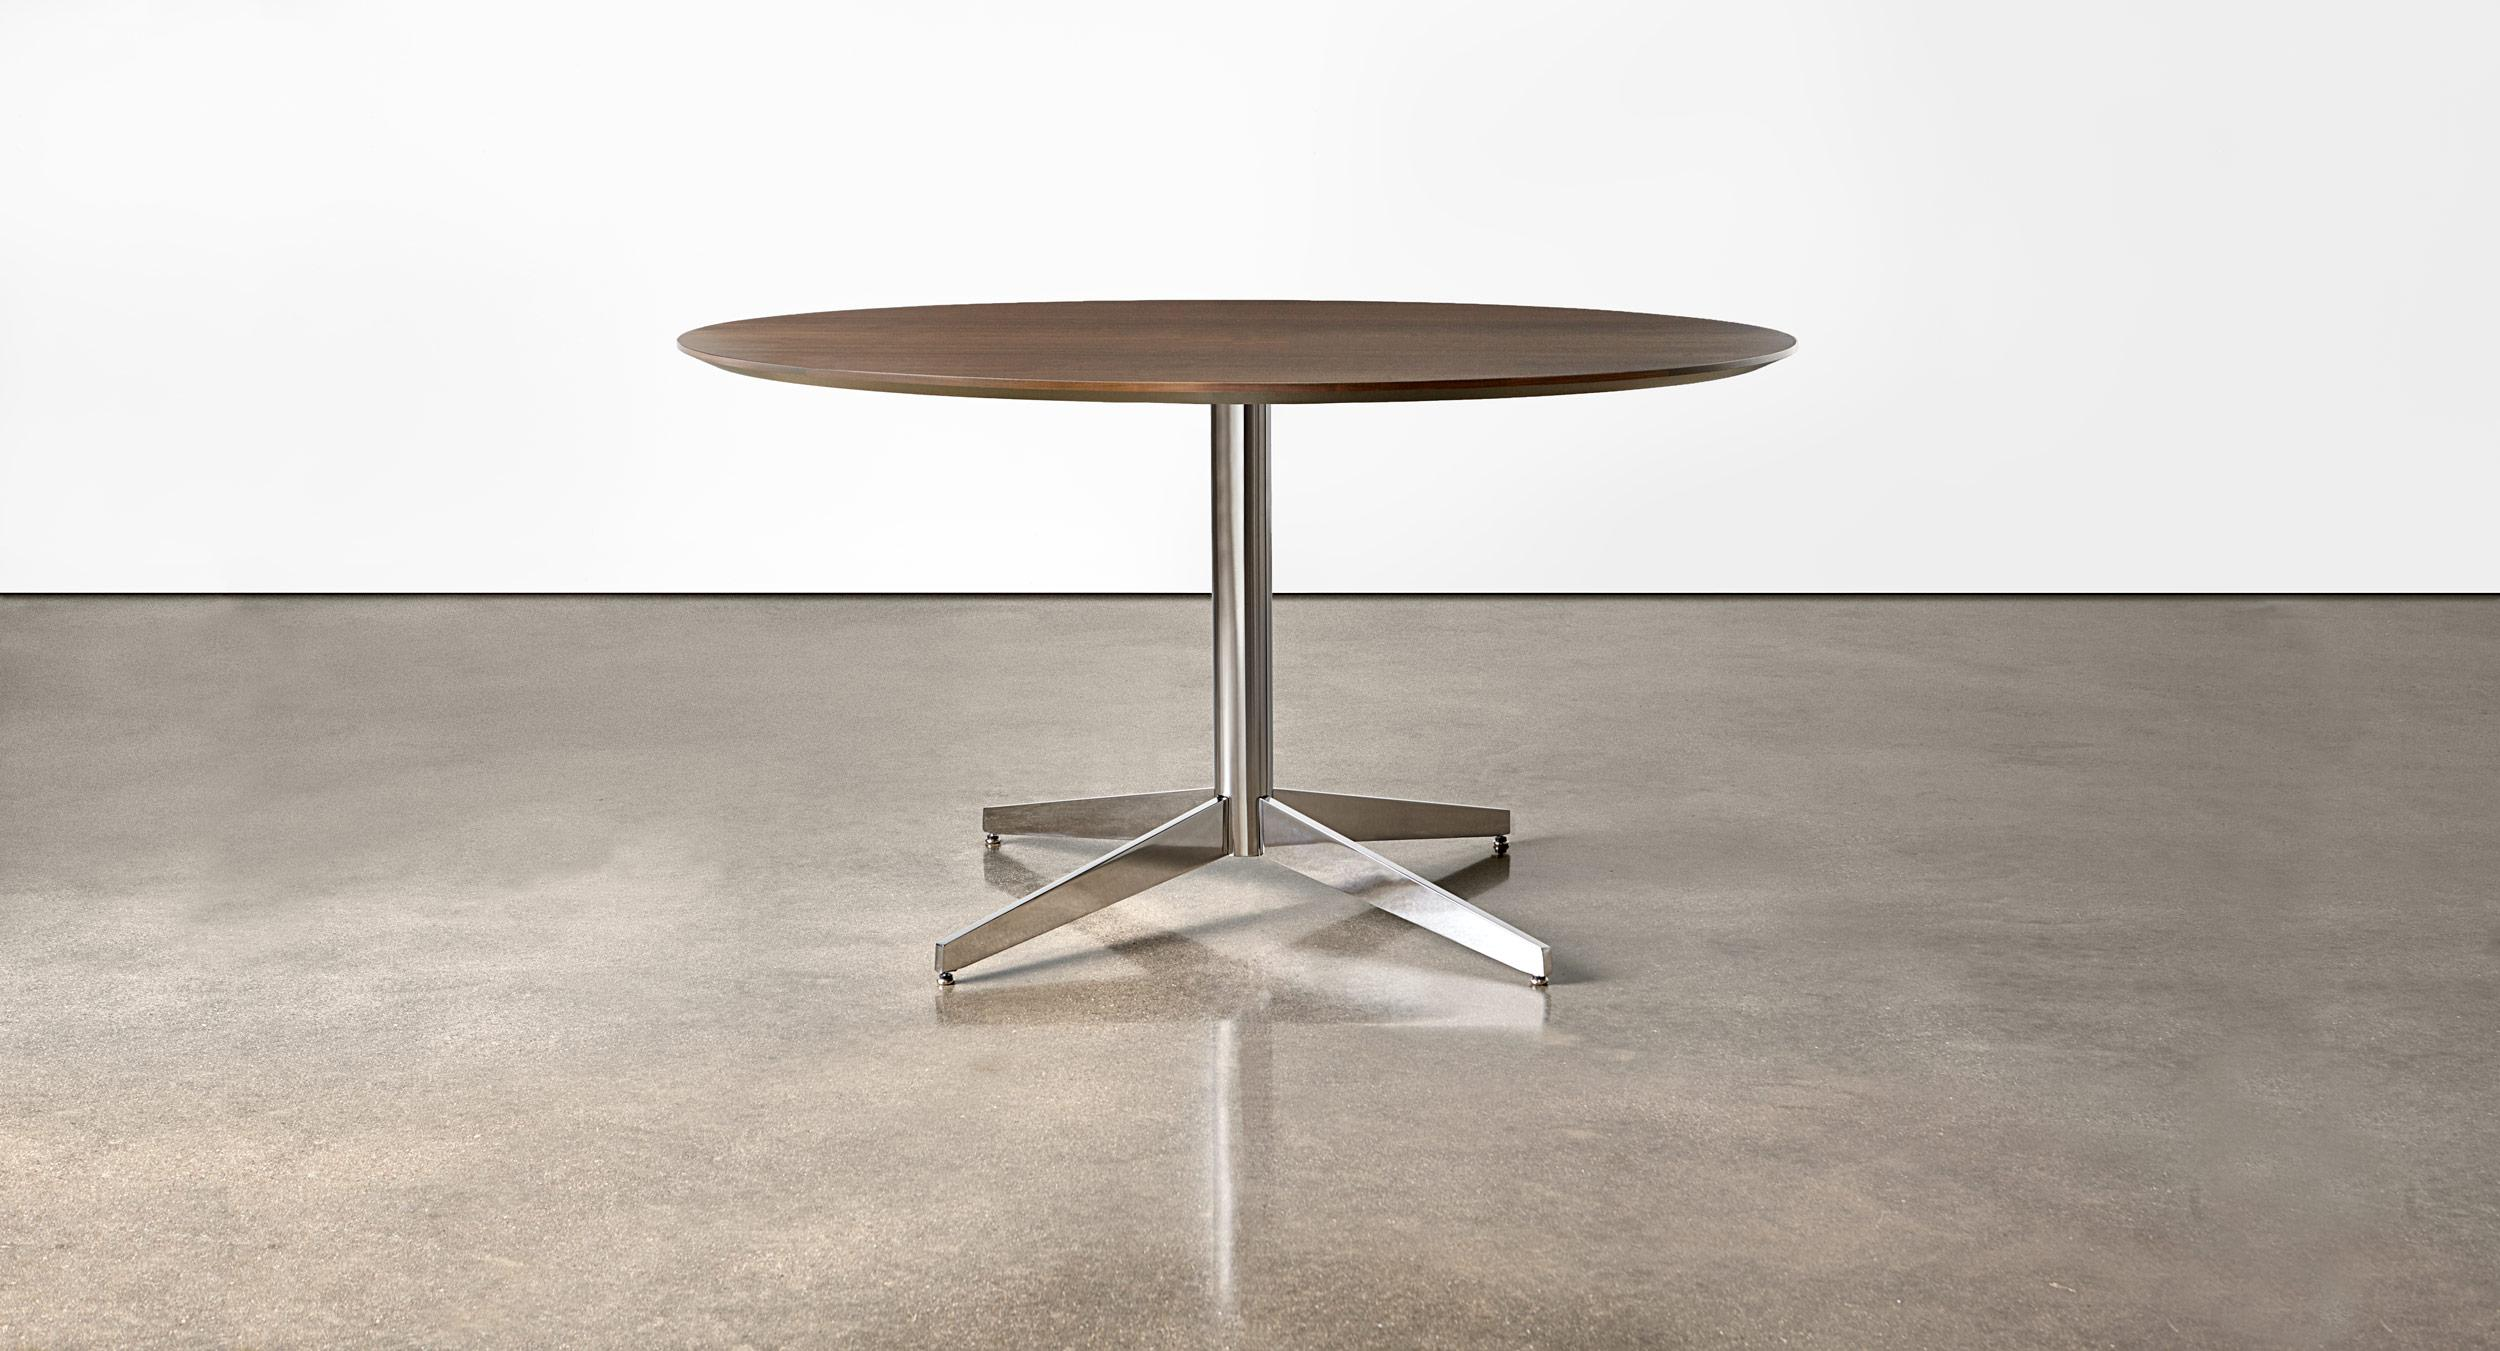 Round table with Prong base